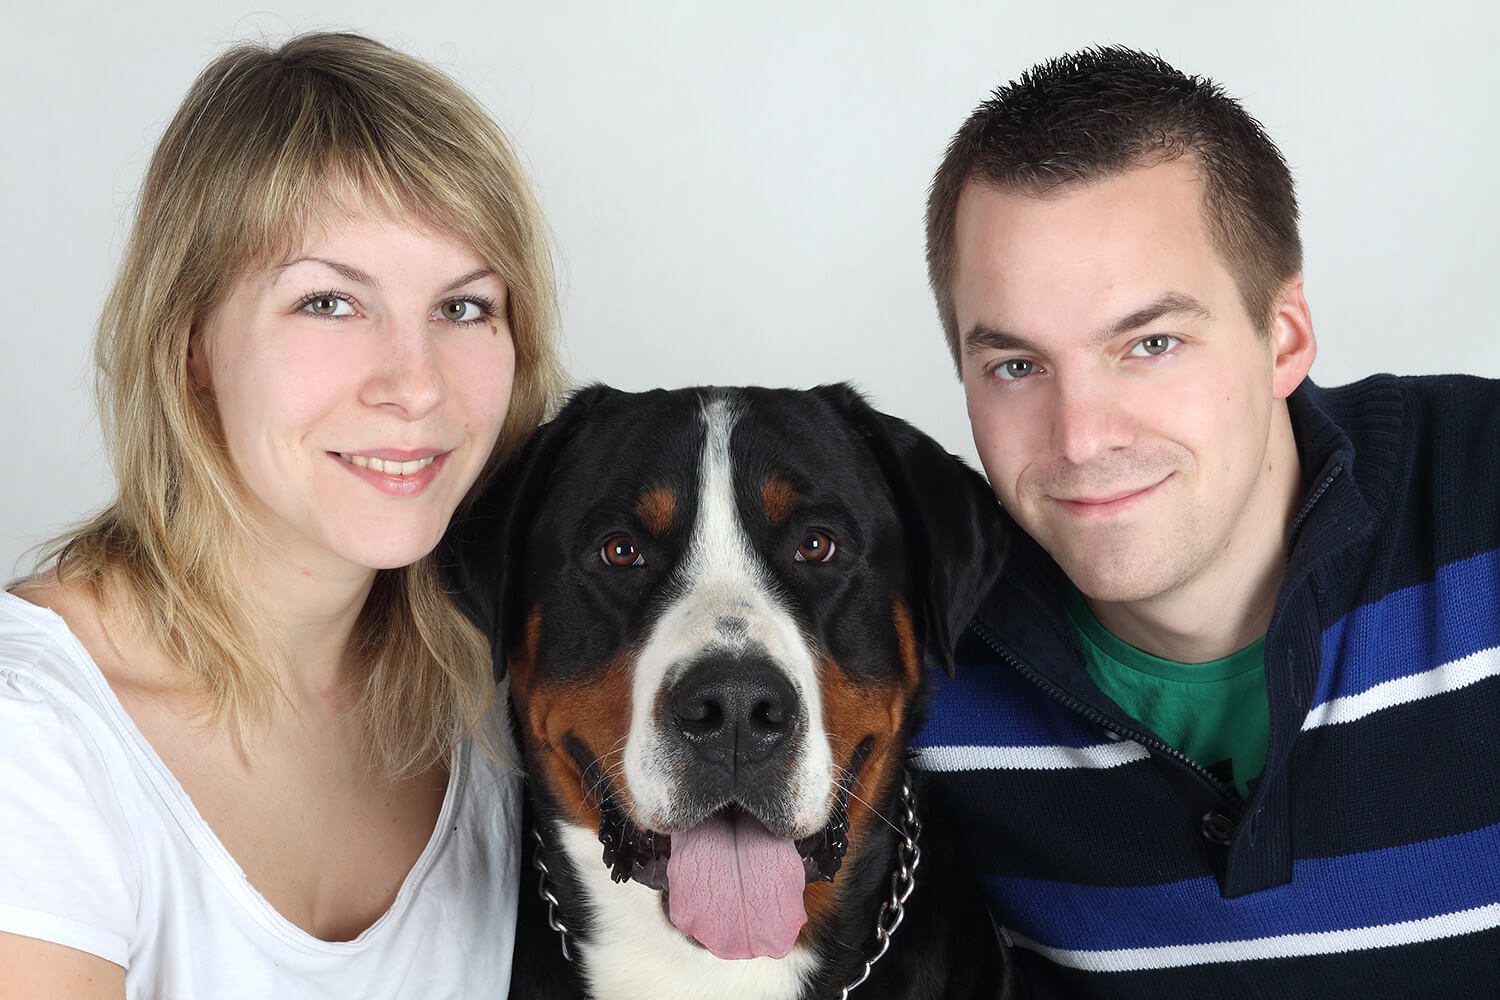 couple photo of a woman, a man, and a dog